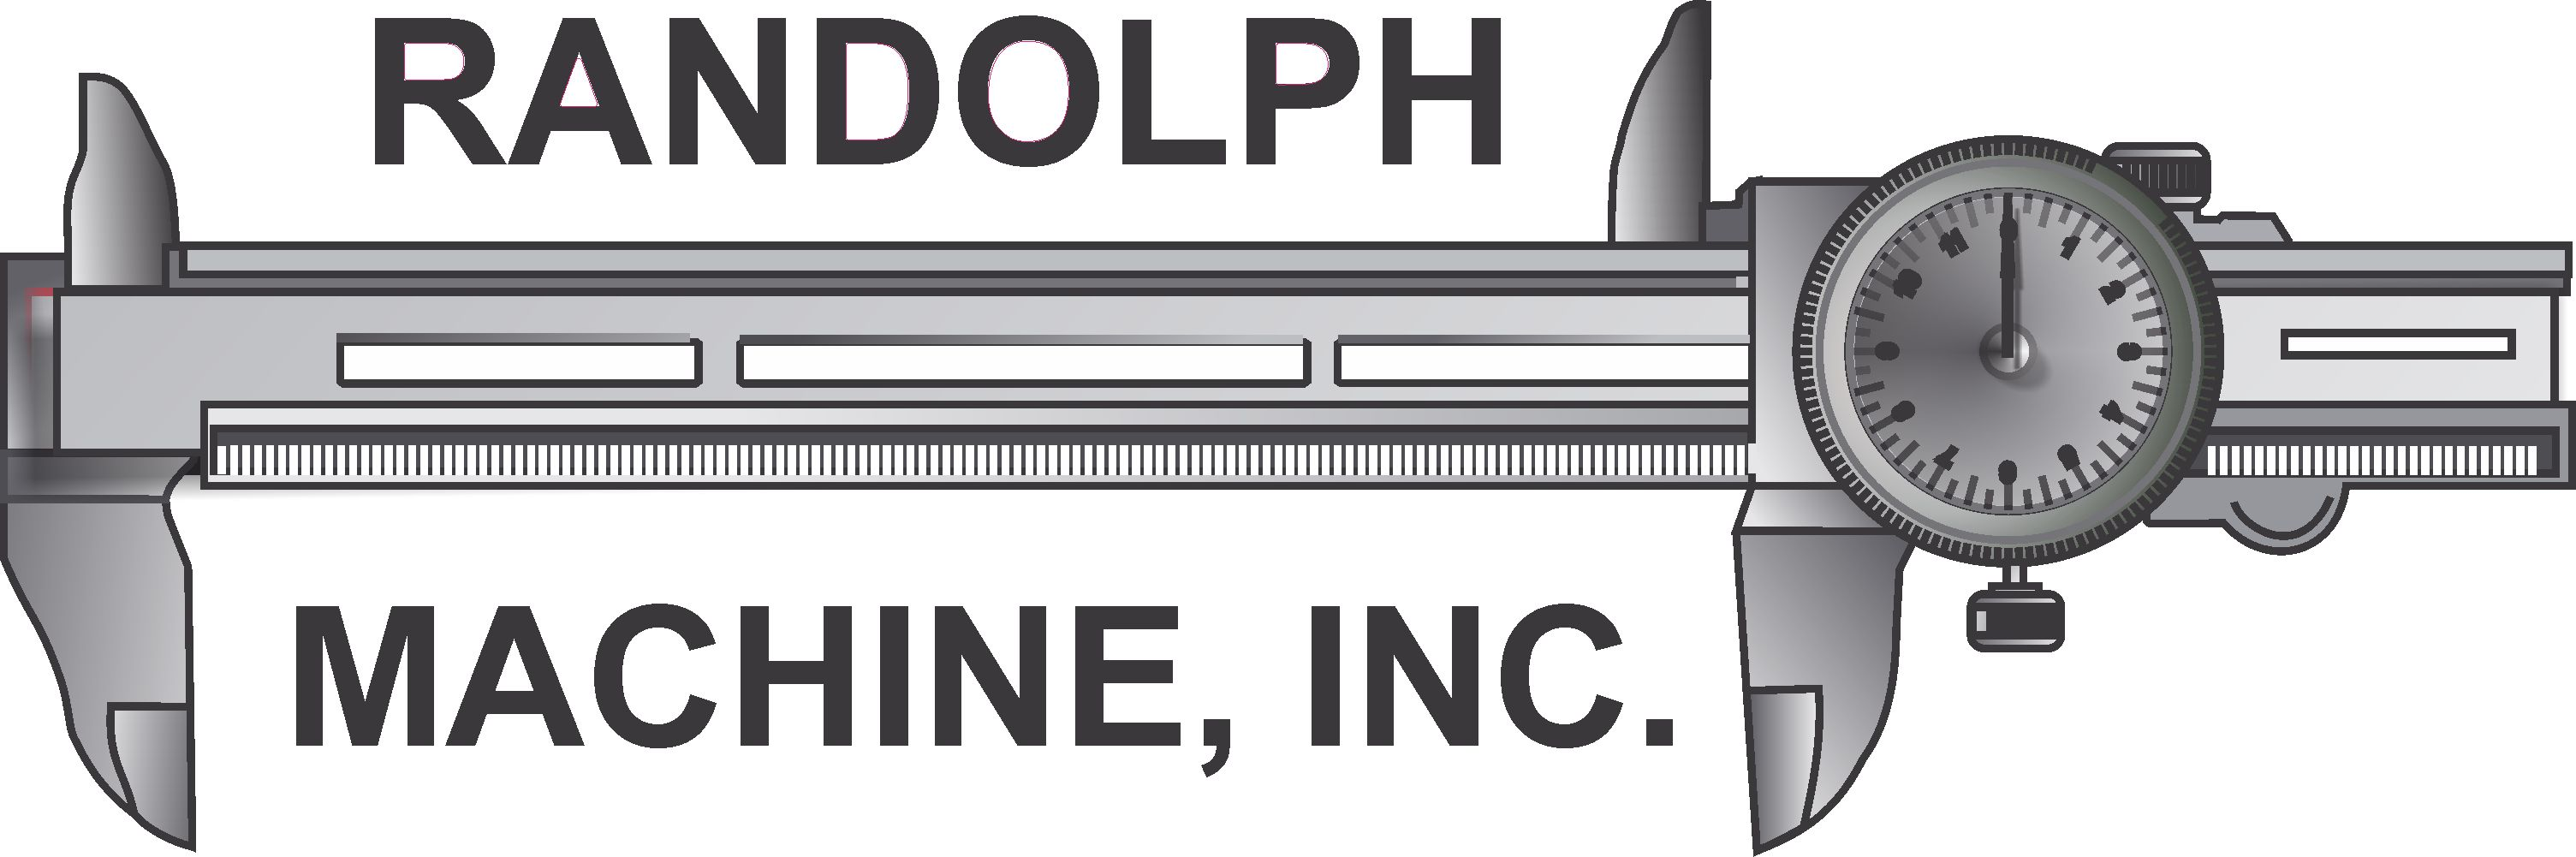 Randolph Machine, Inc